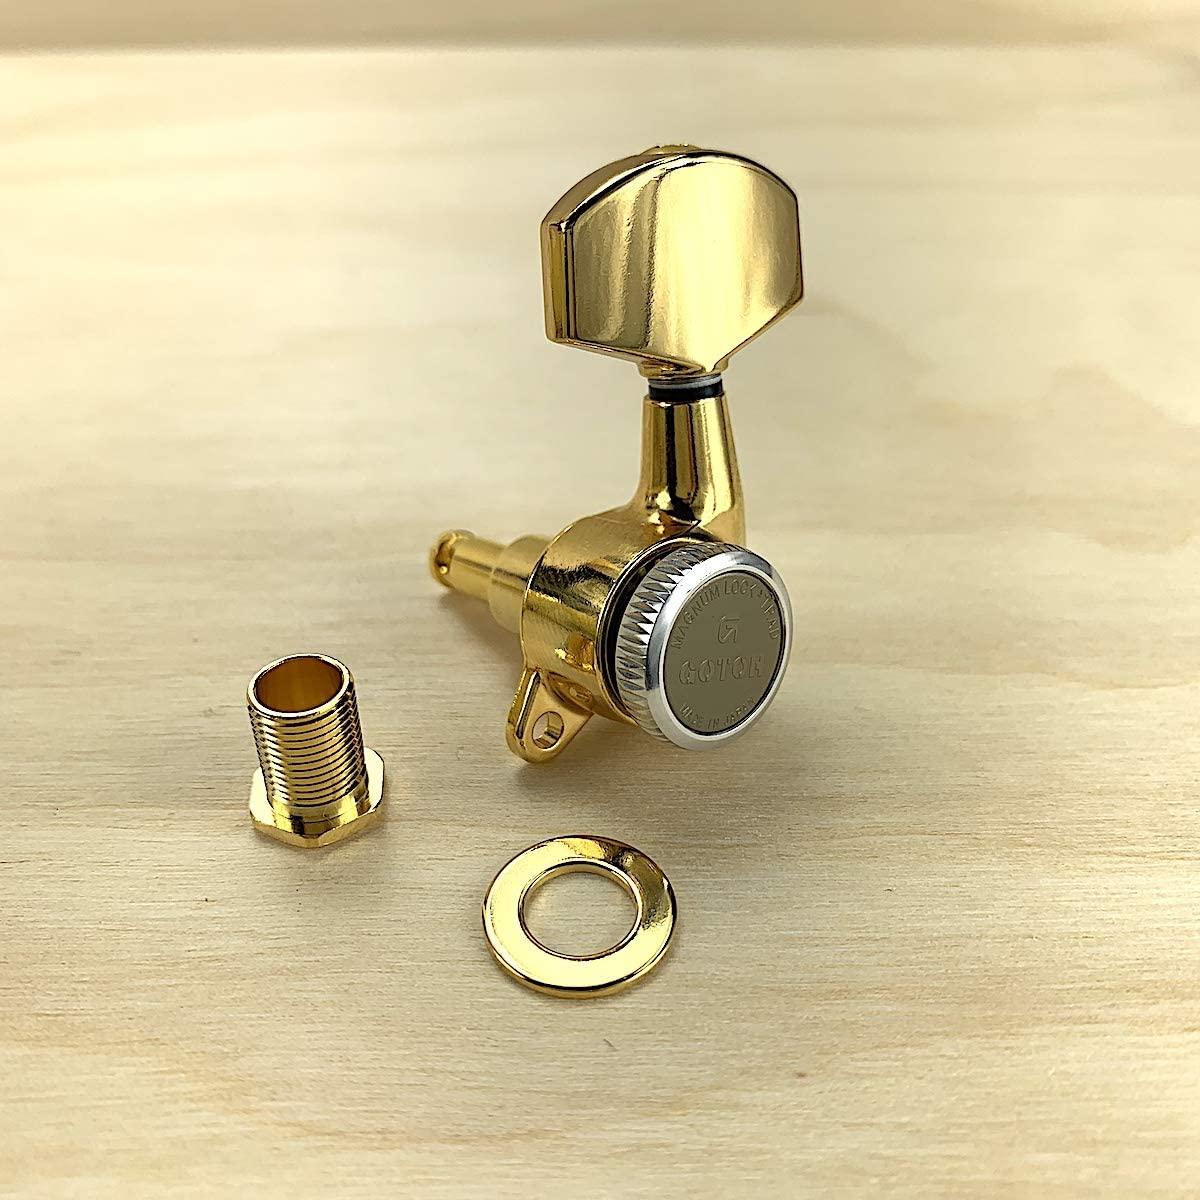 Keystone Buttons For Gotoh Tuning Keys - GOLD 6 NEW